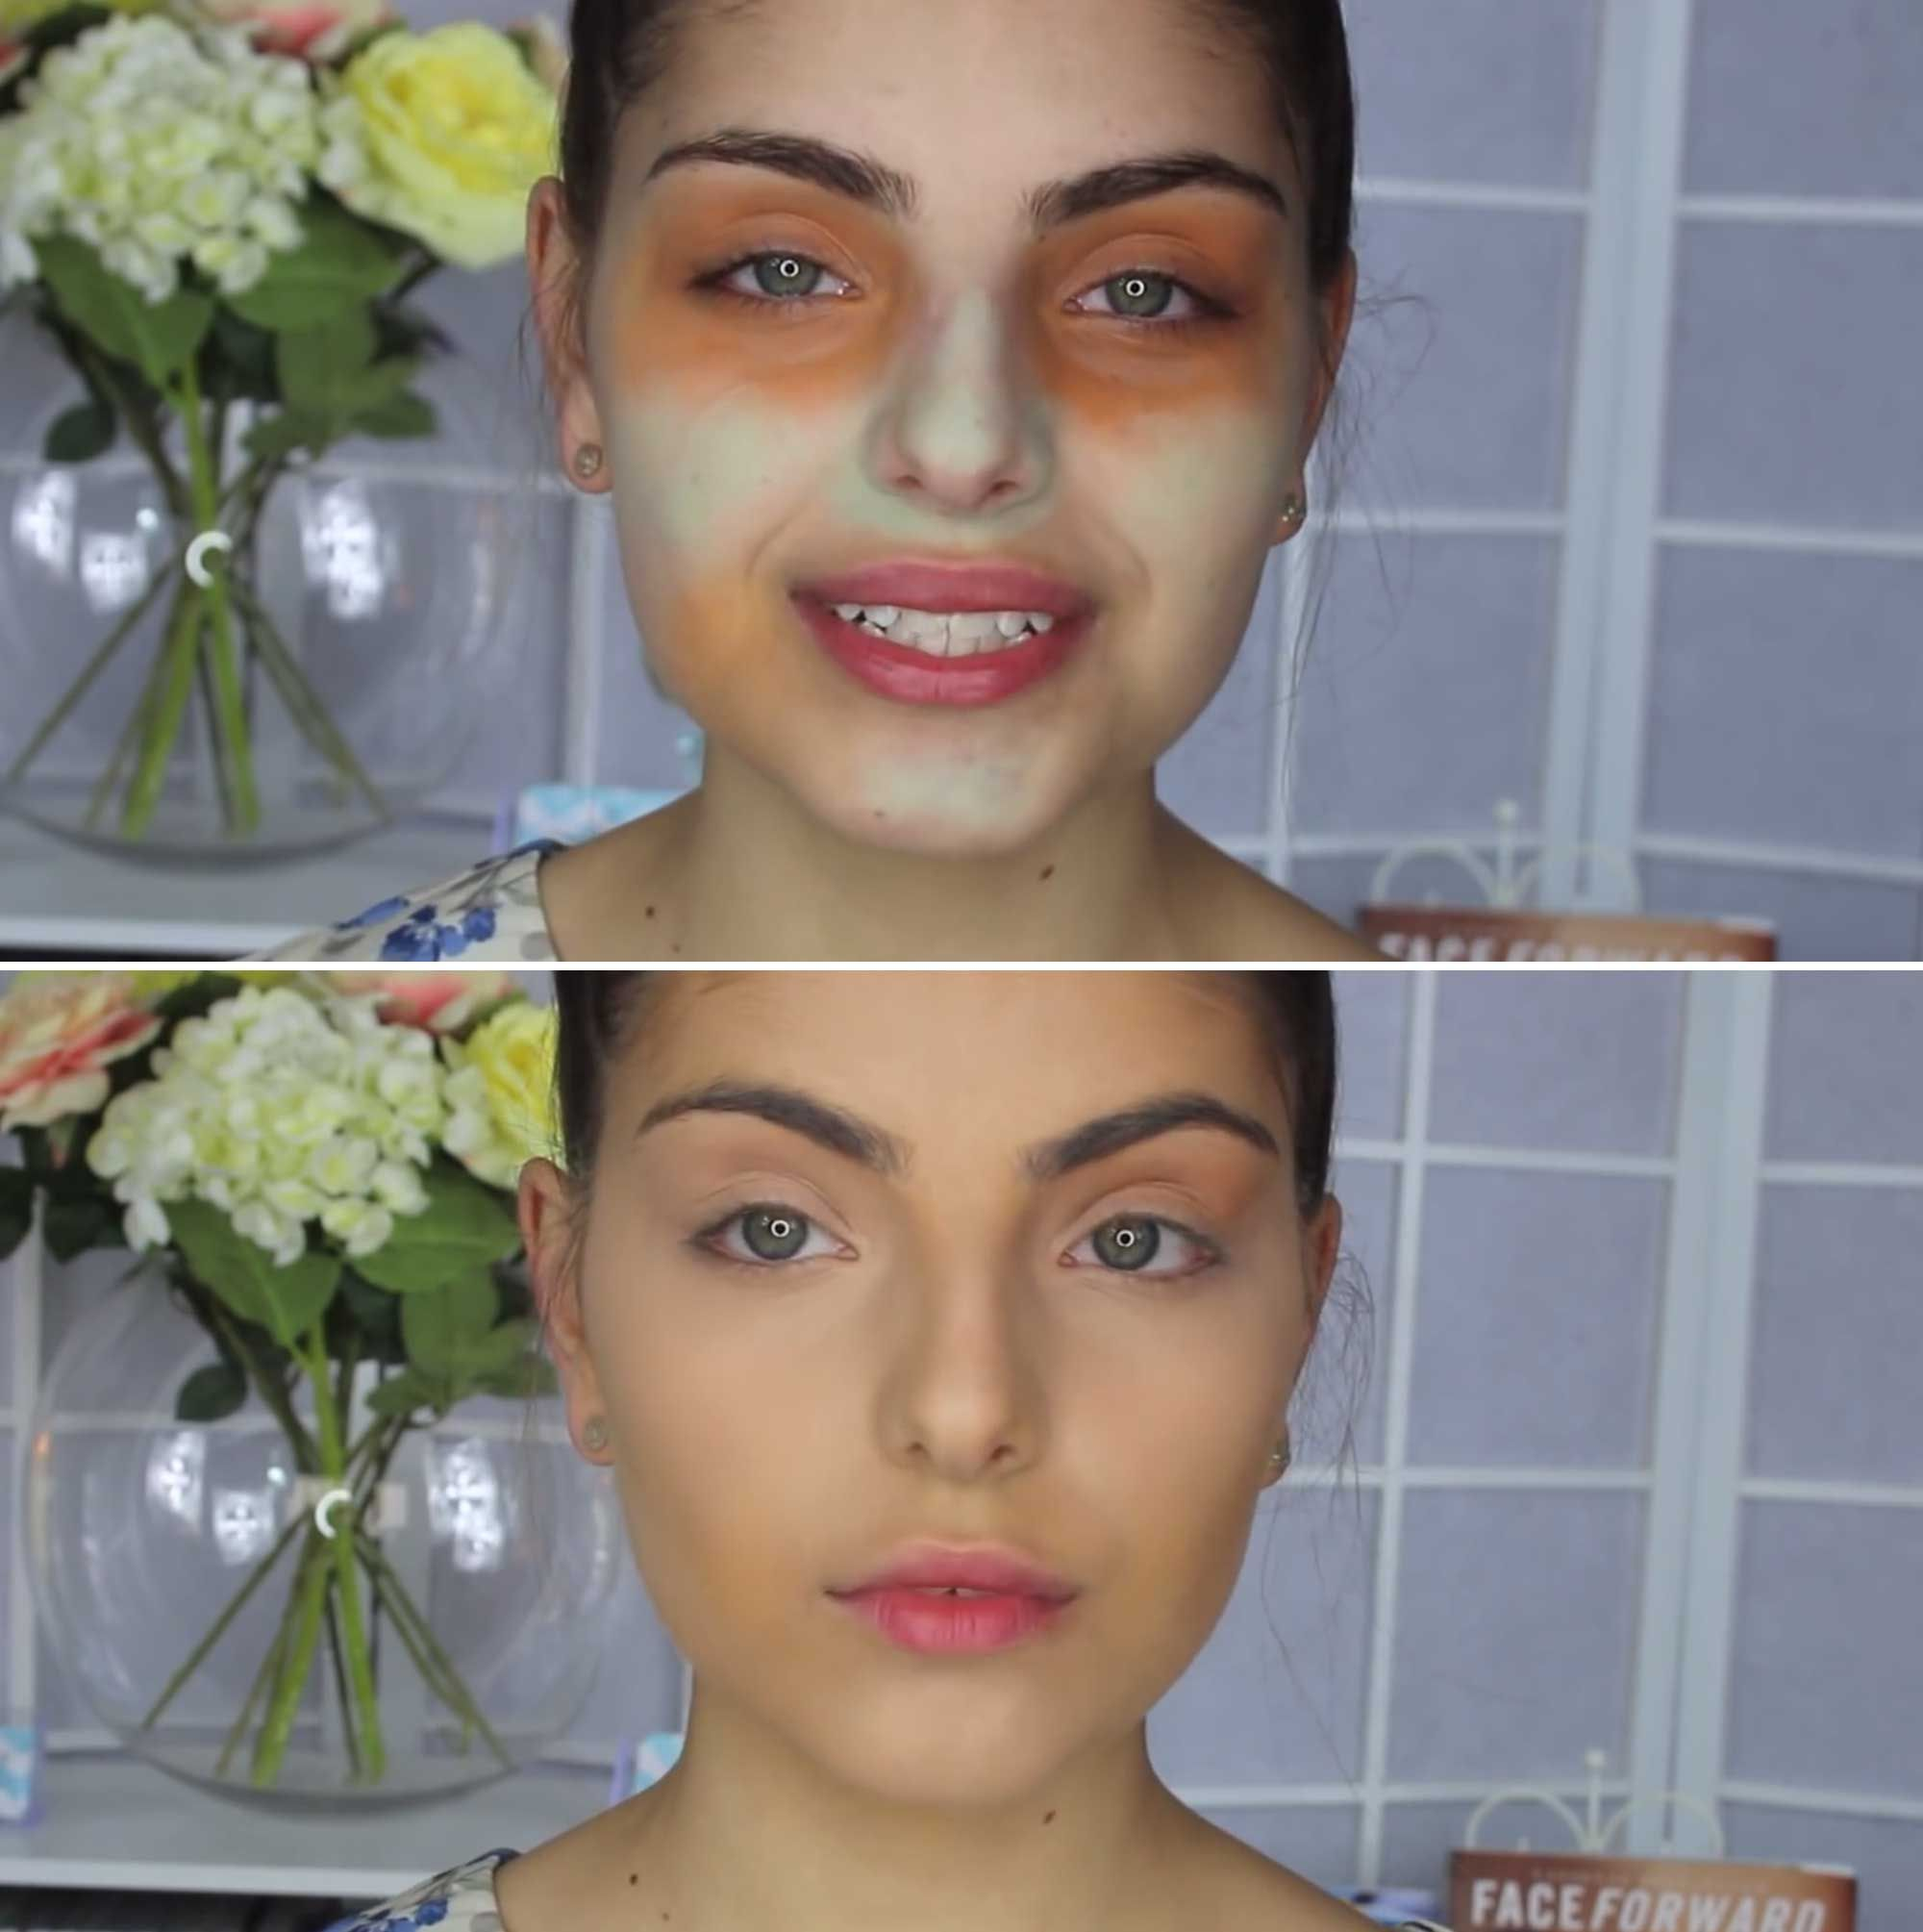 The Latest Trend in Contouring is ActuallyGenius The Latest Trend in Contouring is ActuallyGenius new photo